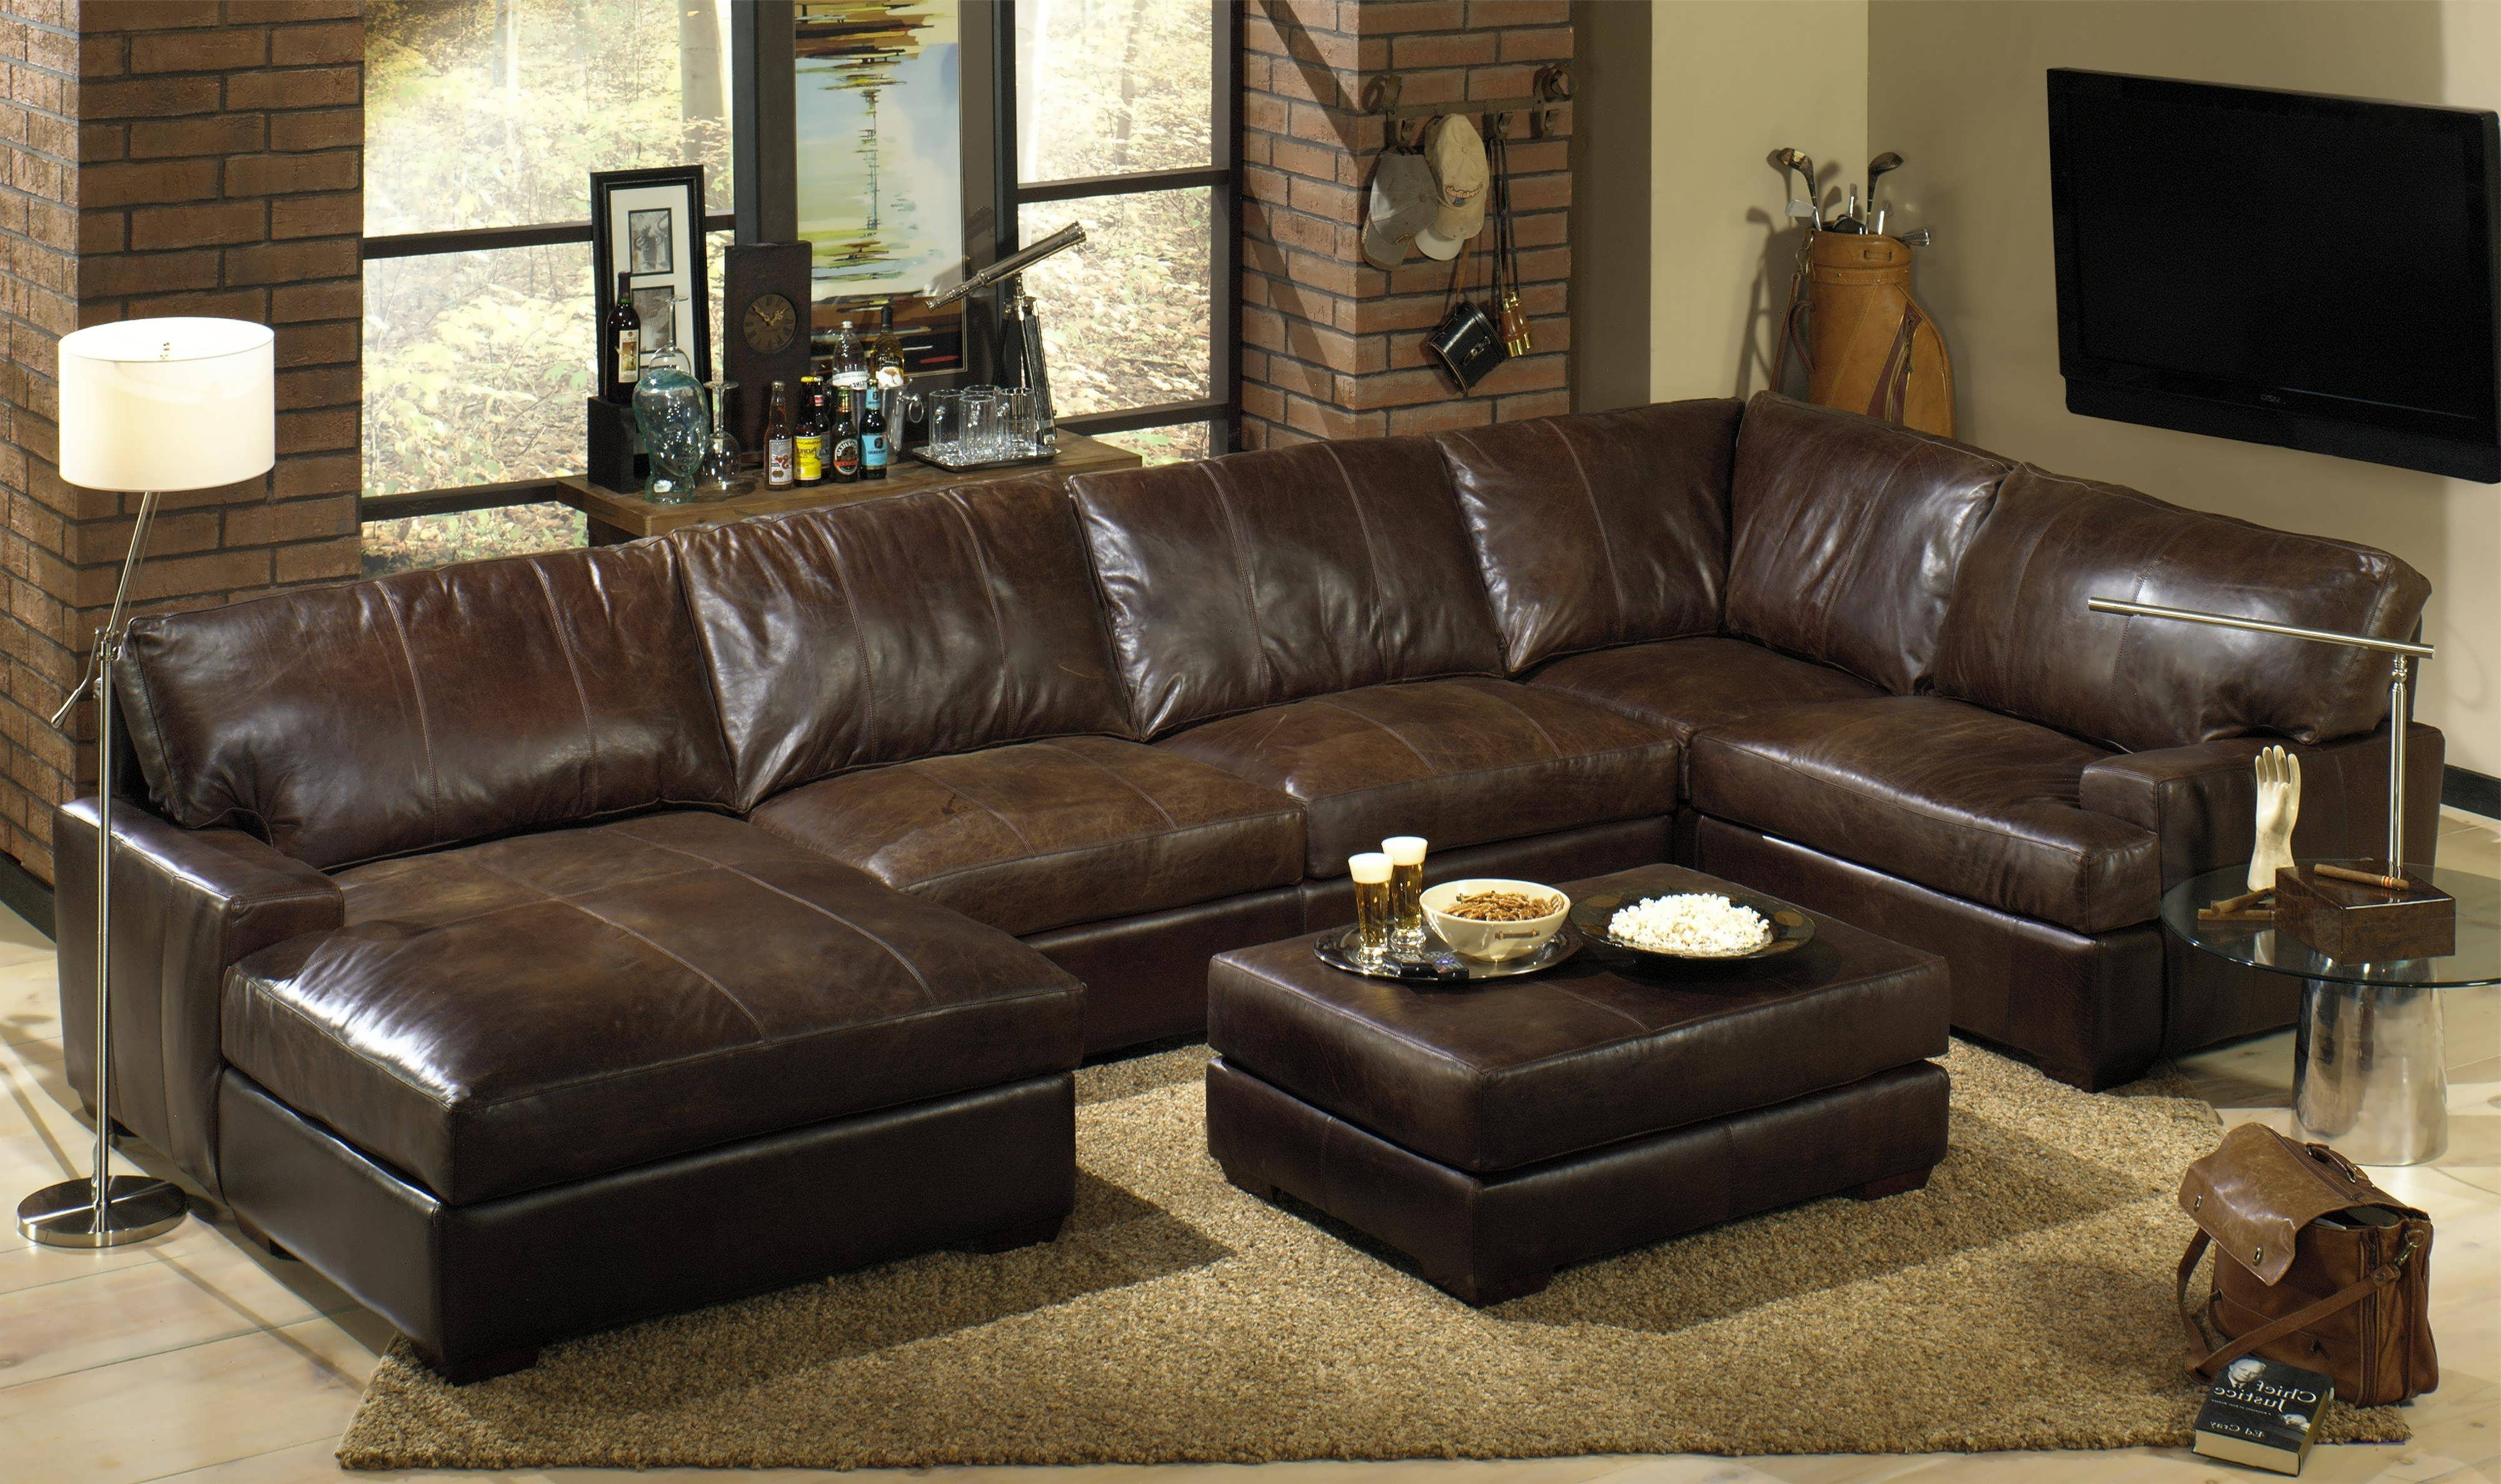 You can find it a variety of locations, but knowing exactly what you should look for is ke. 2020 Best of Leather Sofas With Chaise